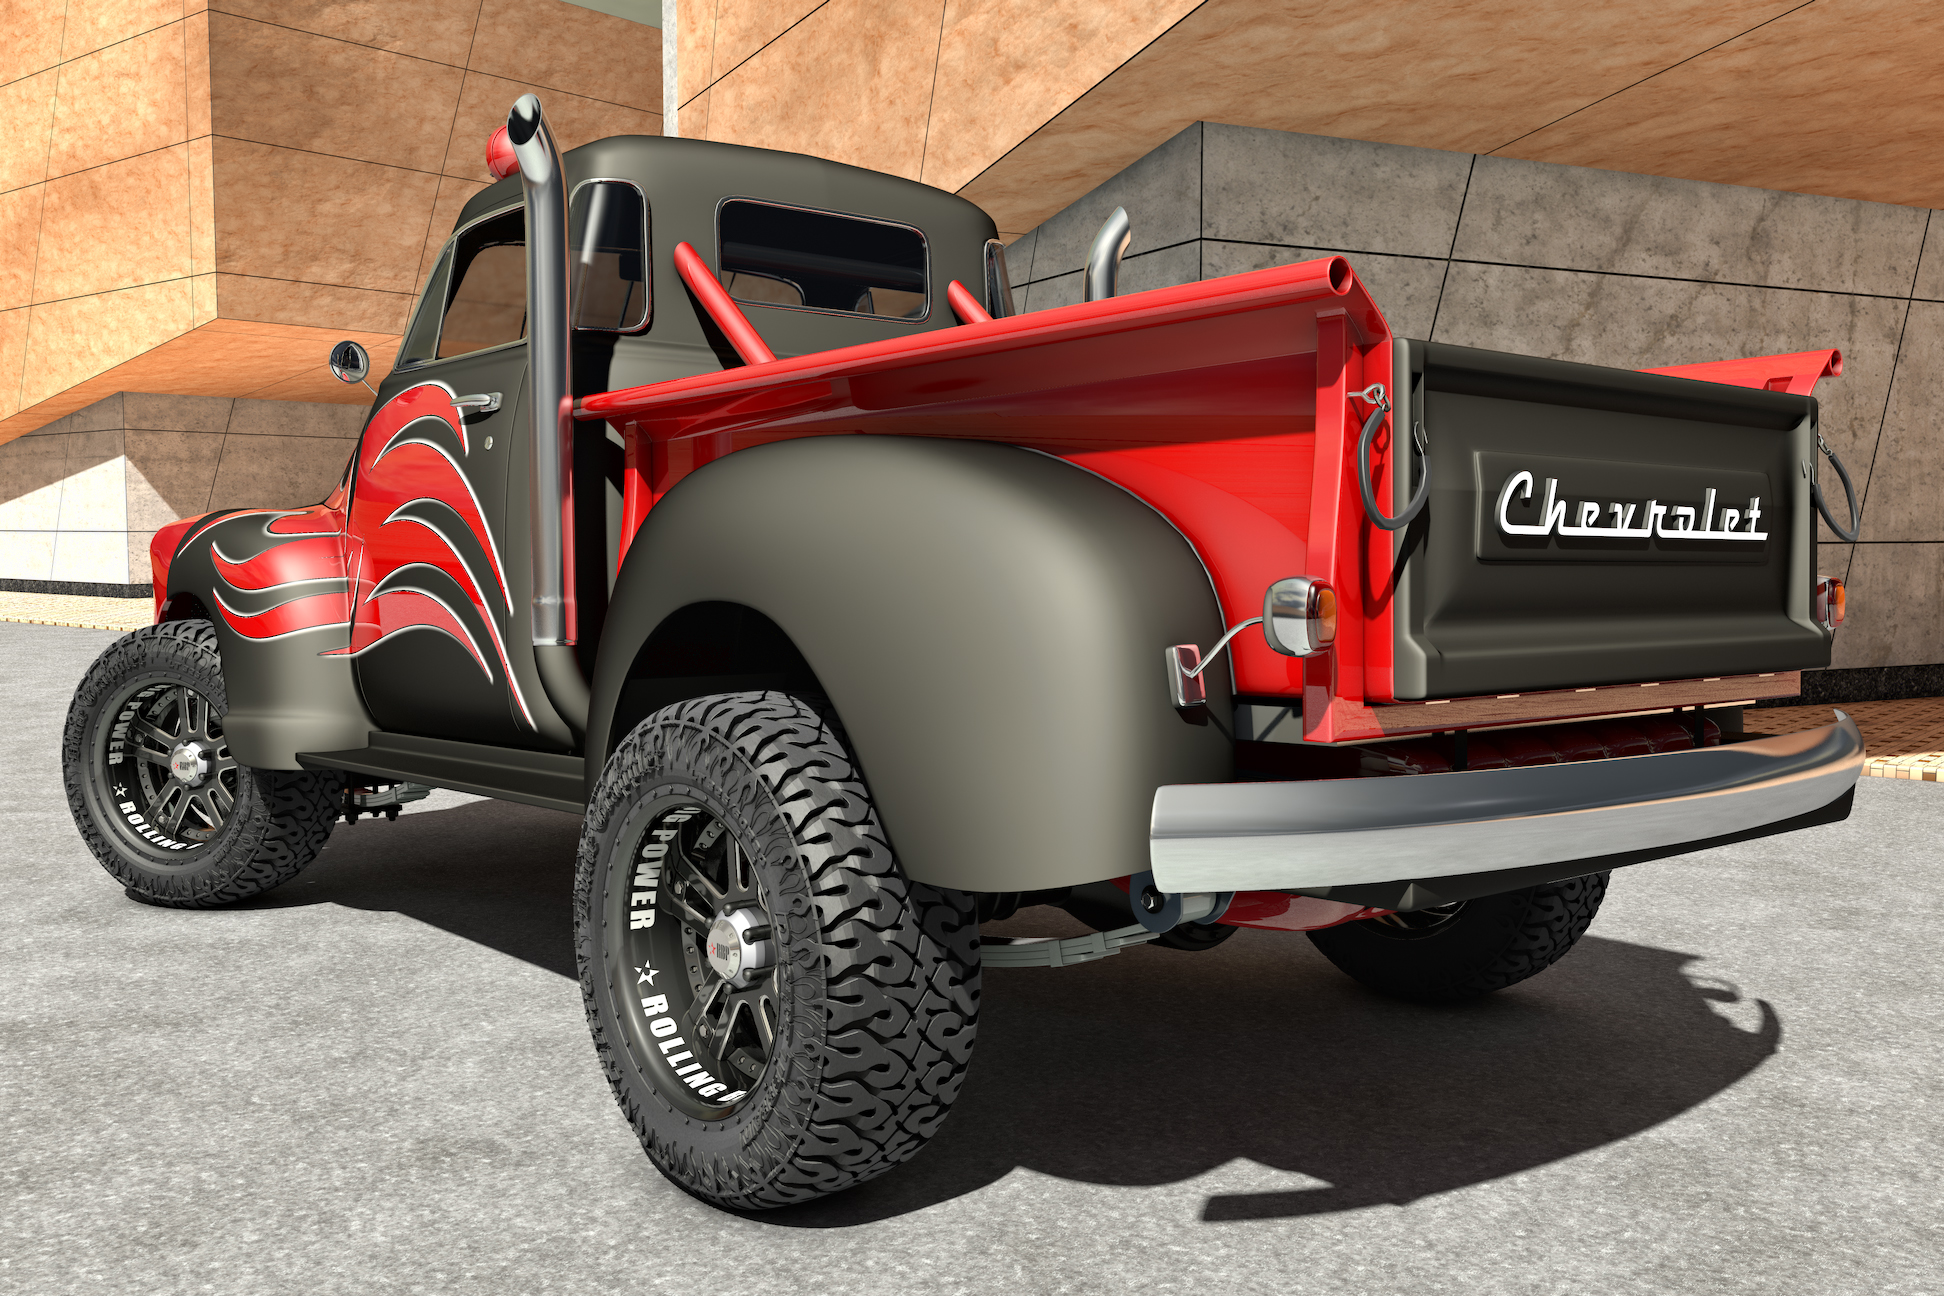 1951 chevrolet pickup 4x4 by samcurry on deviantart. Black Bedroom Furniture Sets. Home Design Ideas